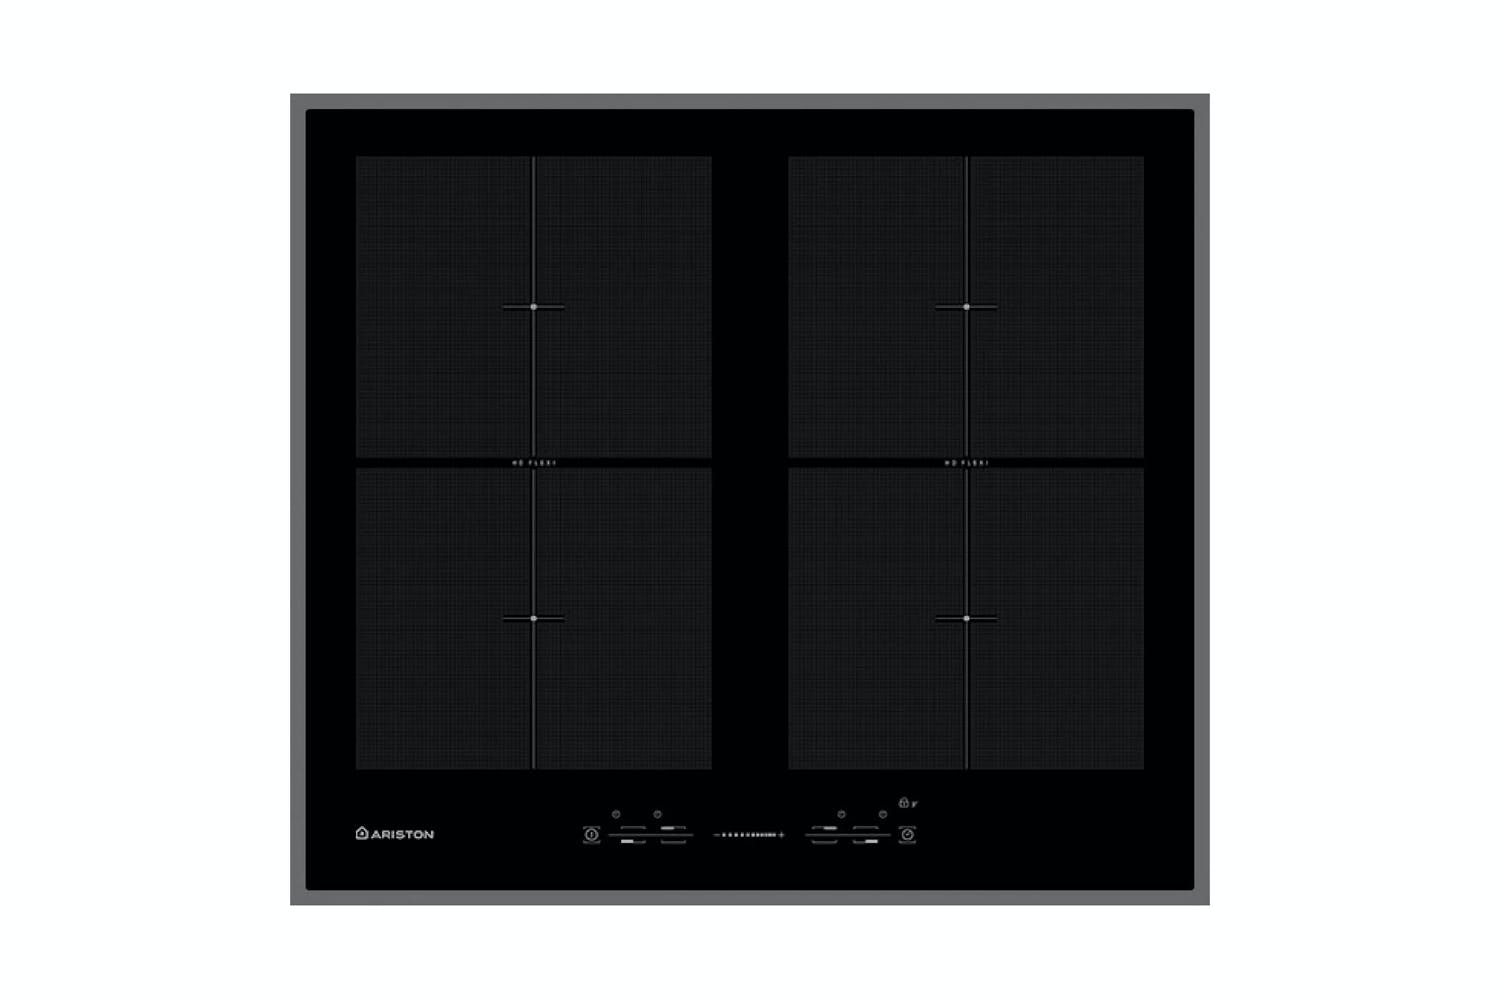 Ariston Harvey Norman New Zealand Induction Cooker Circuit Board Pcb For 60cm Flexizone Cooktop